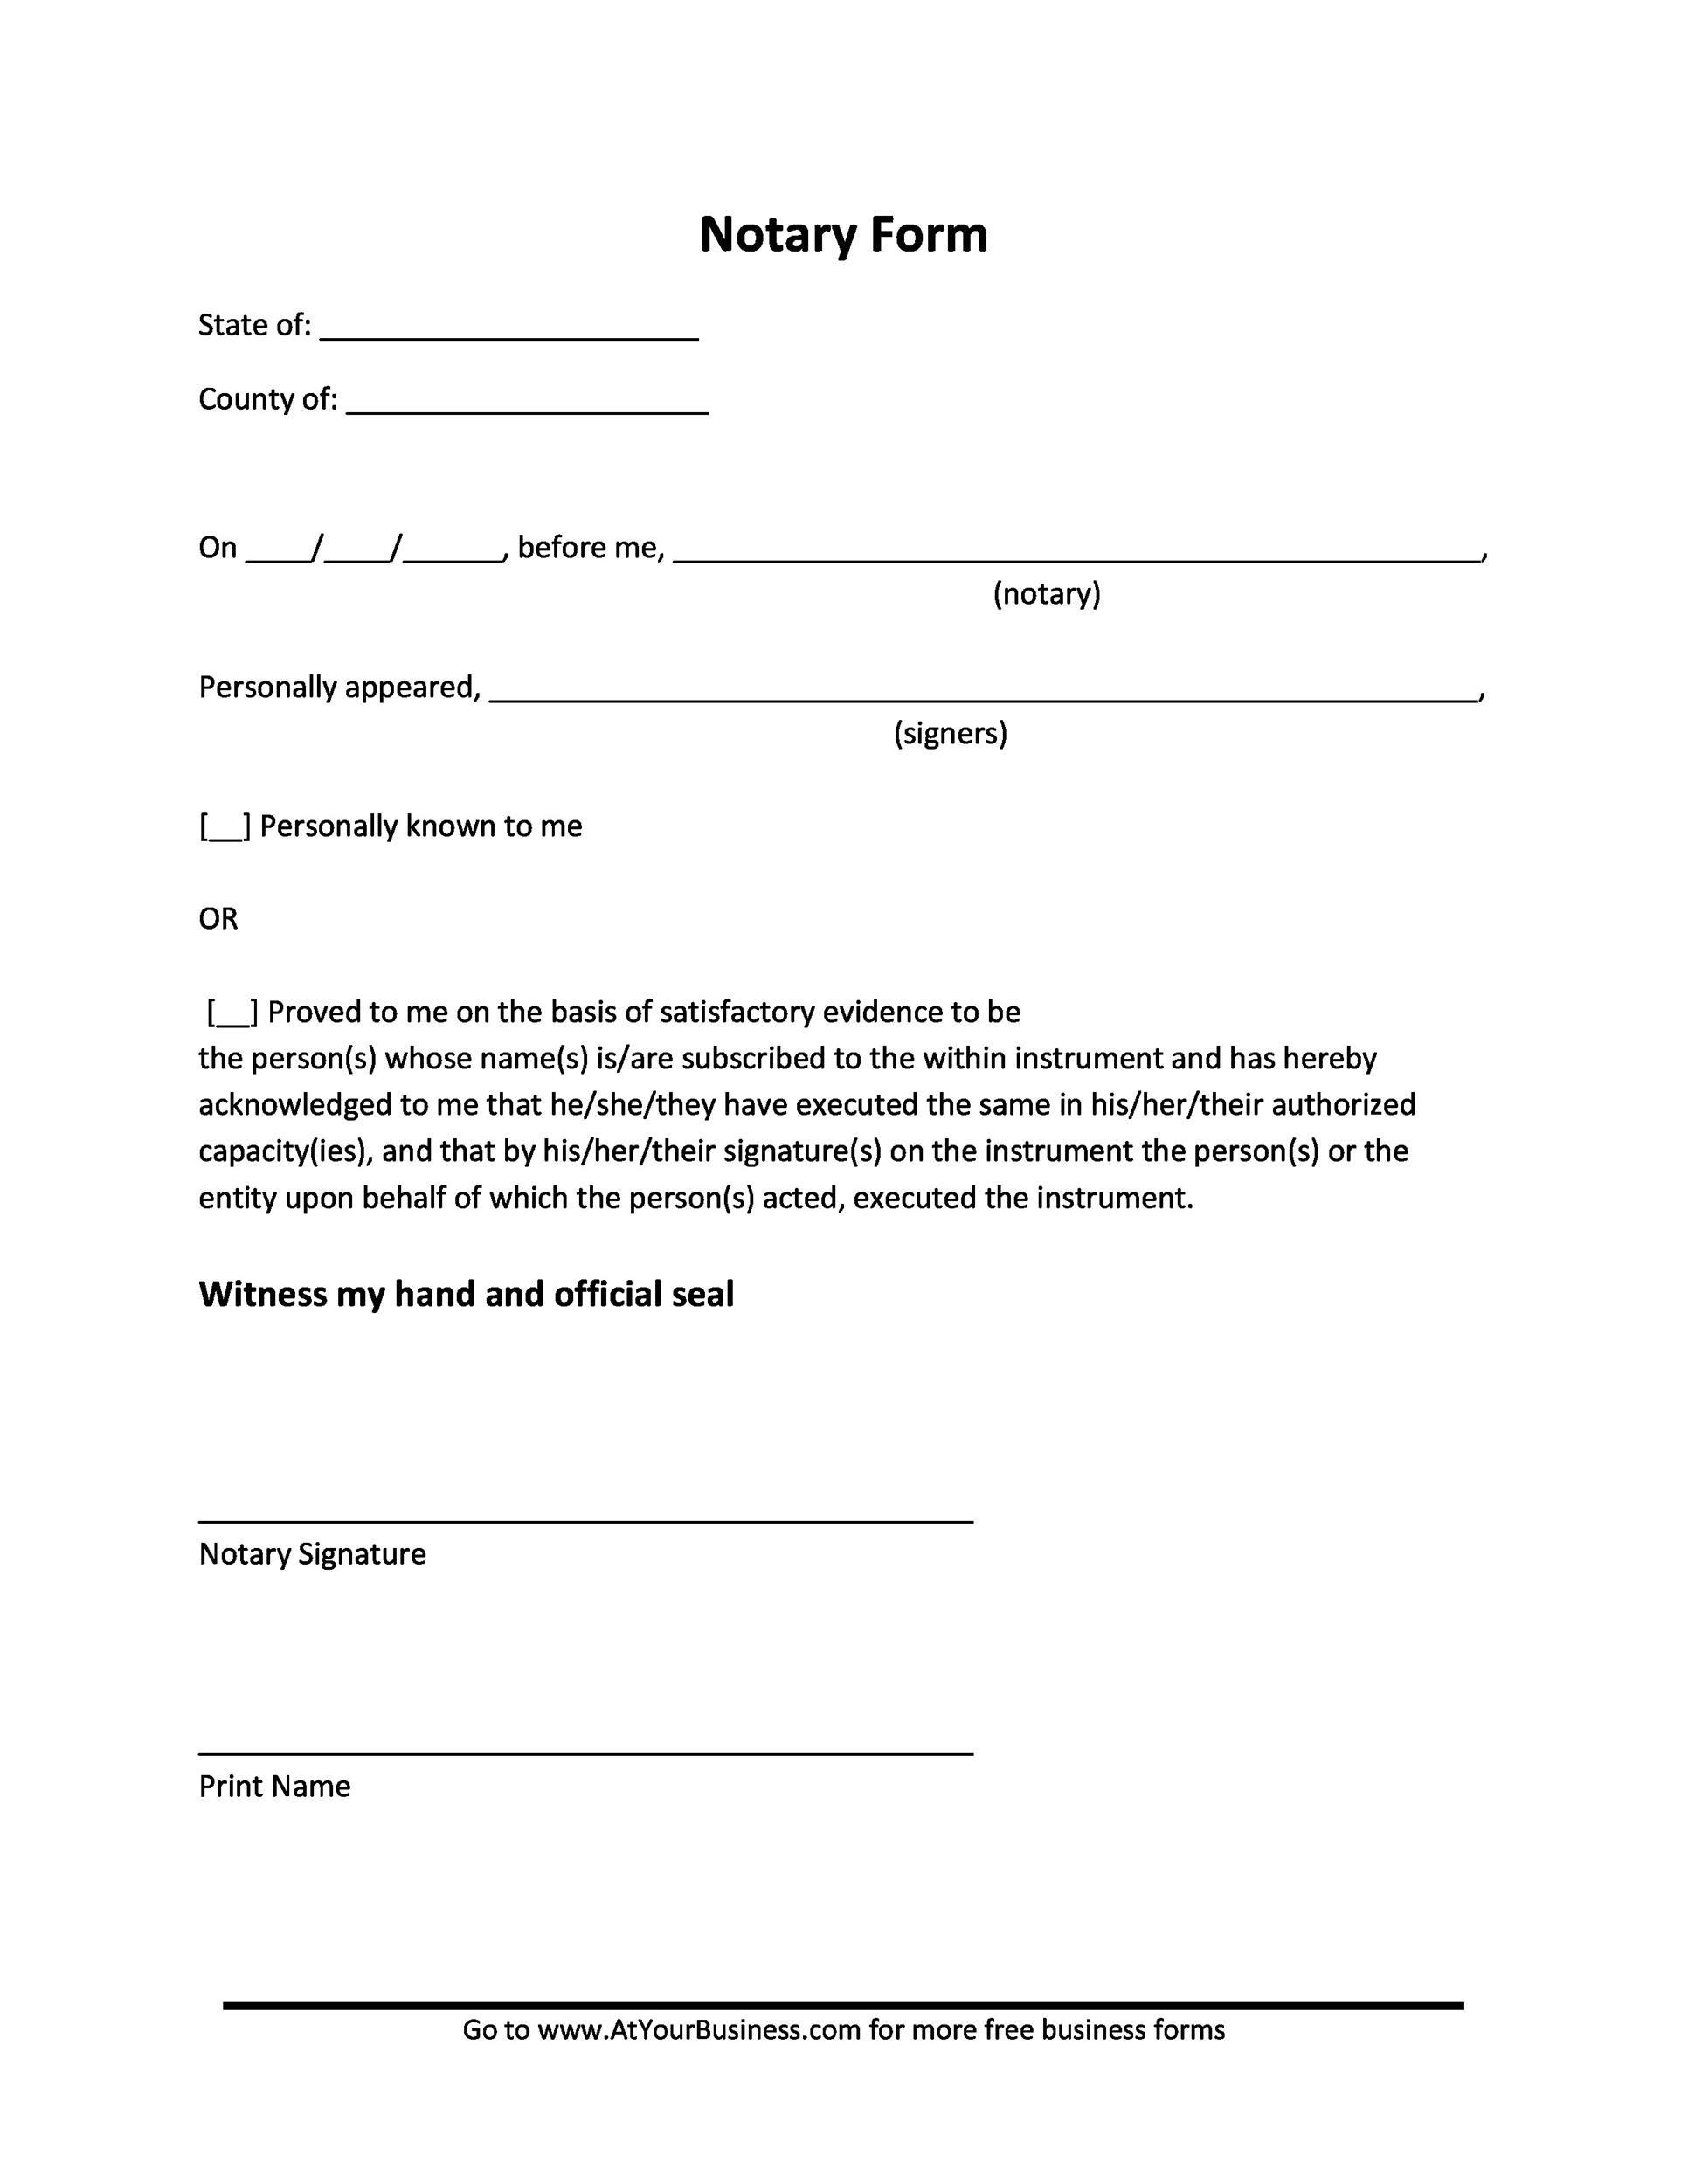 Professional Notarized Letter Templates Template Lab